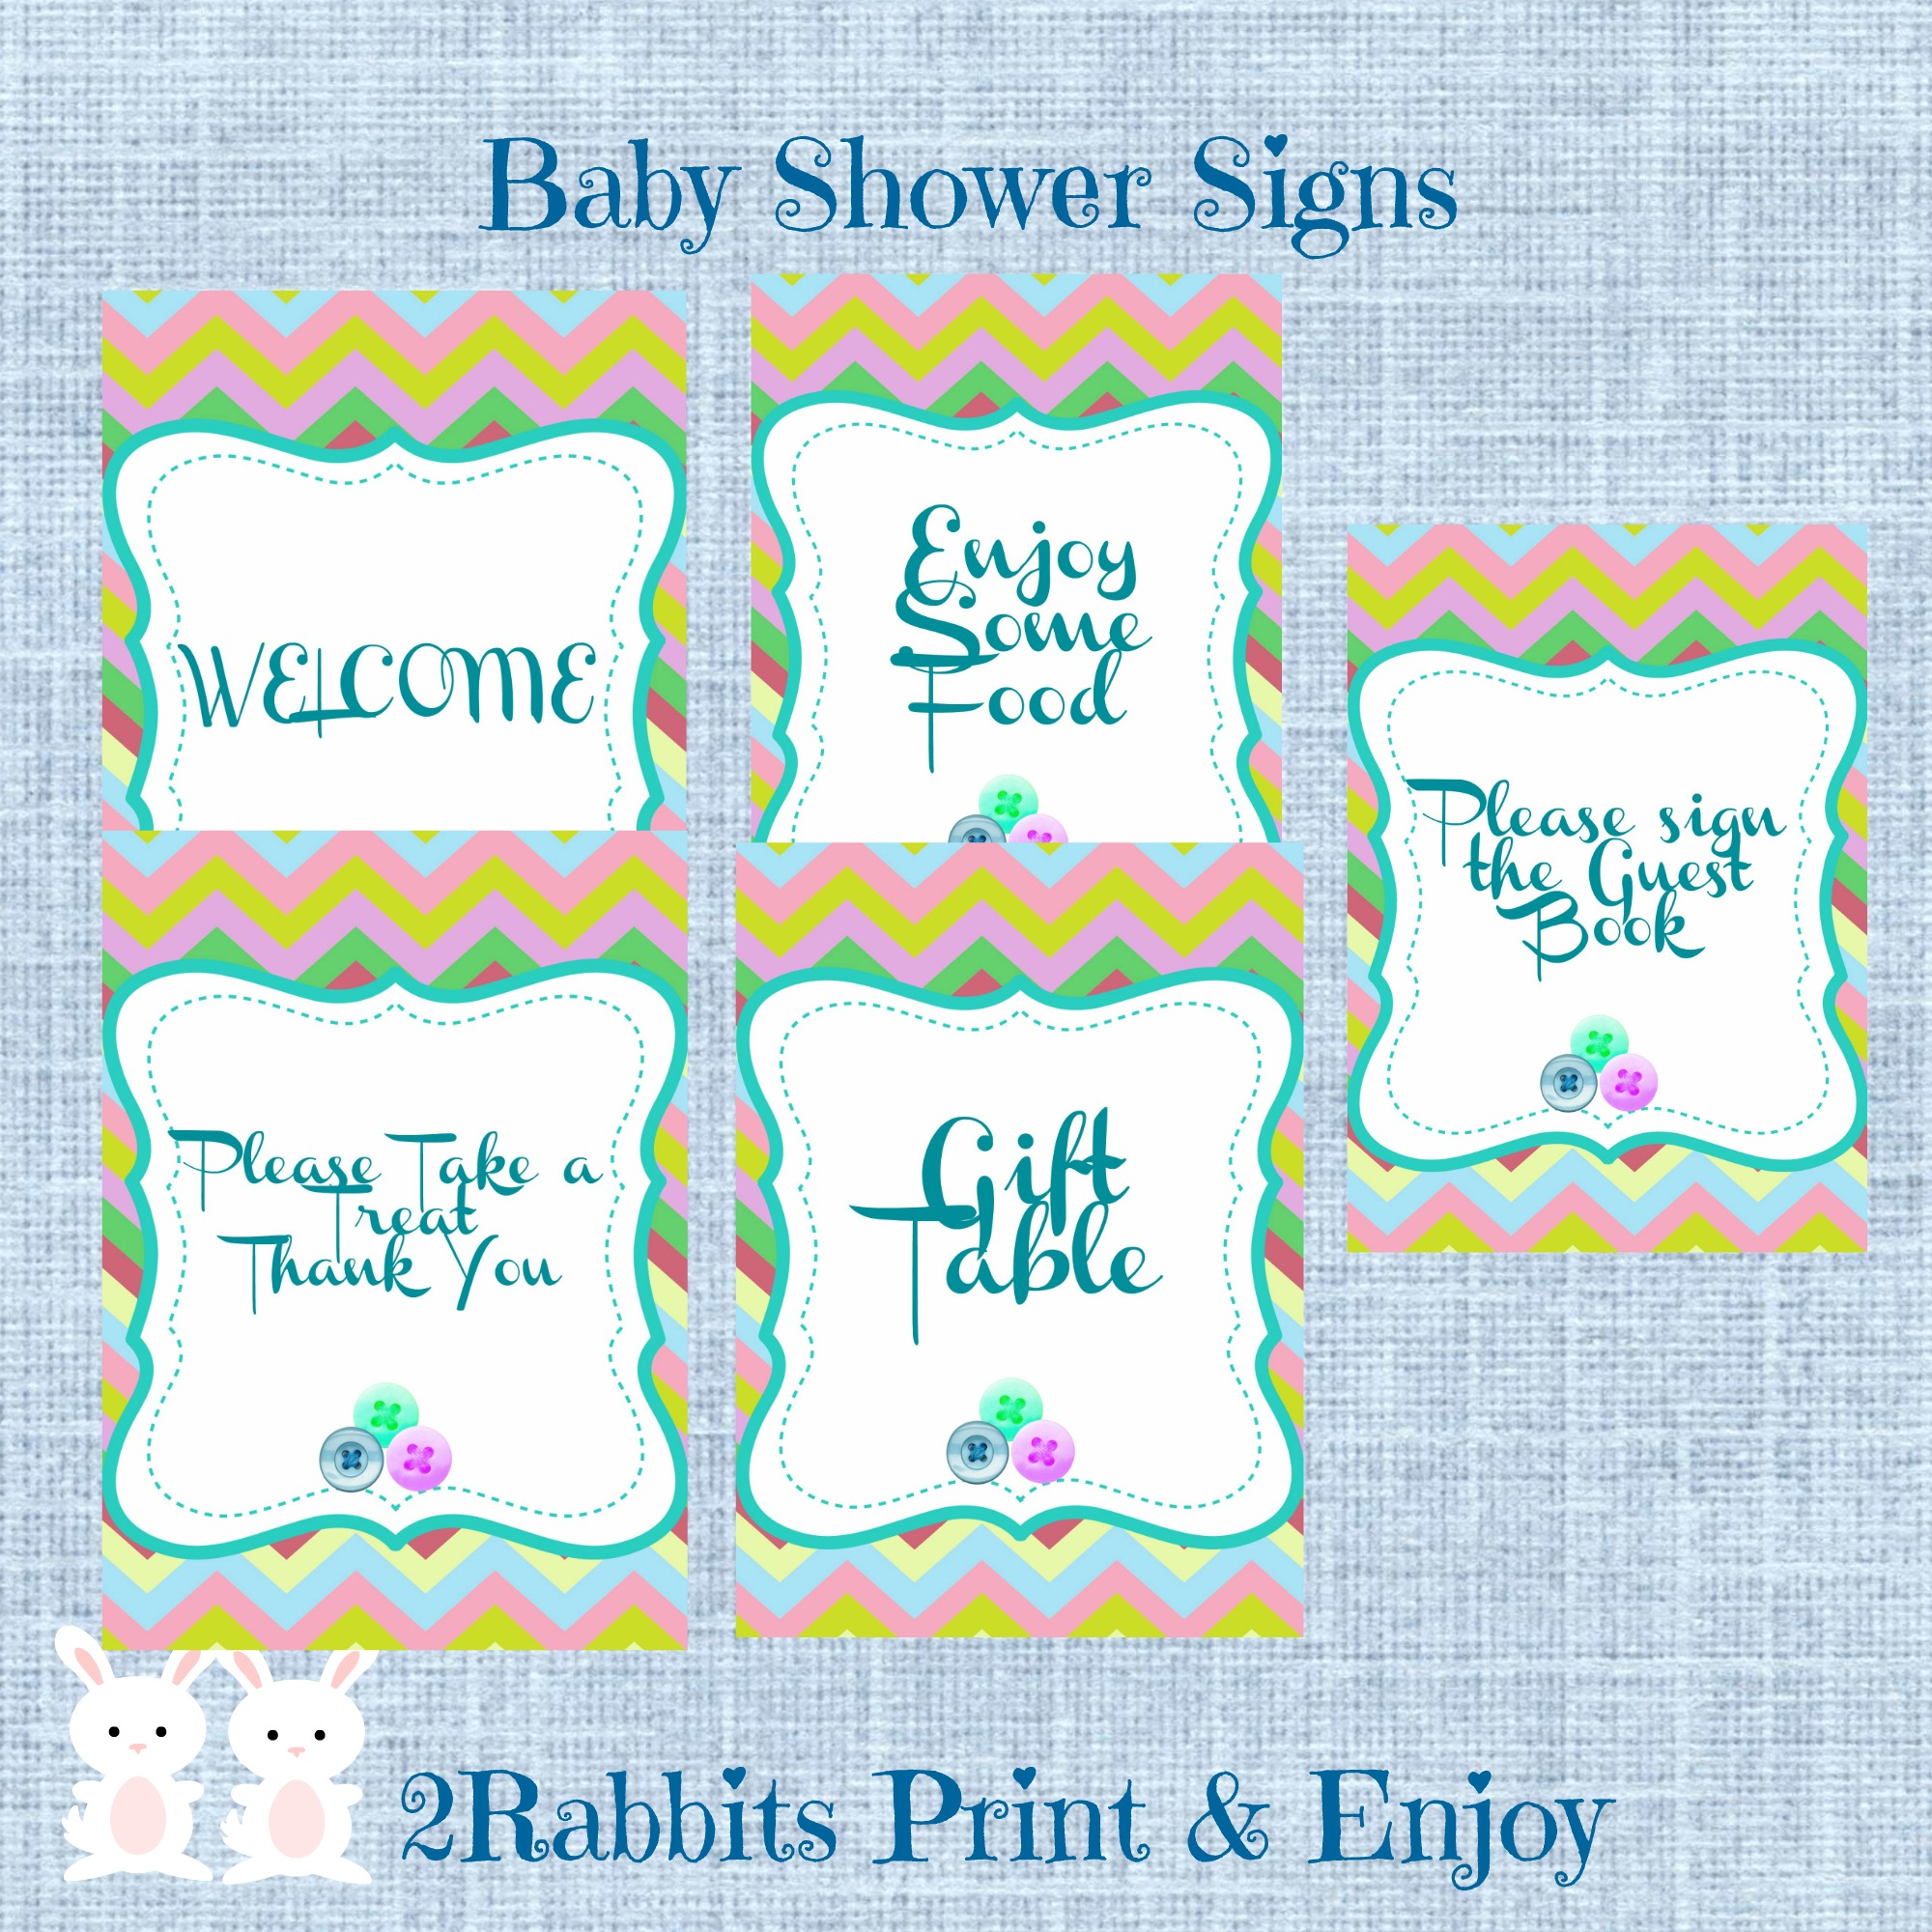 photograph regarding Baby Shower Signs Printable identify Lovely as a Button Little one Shower Drive Board - My